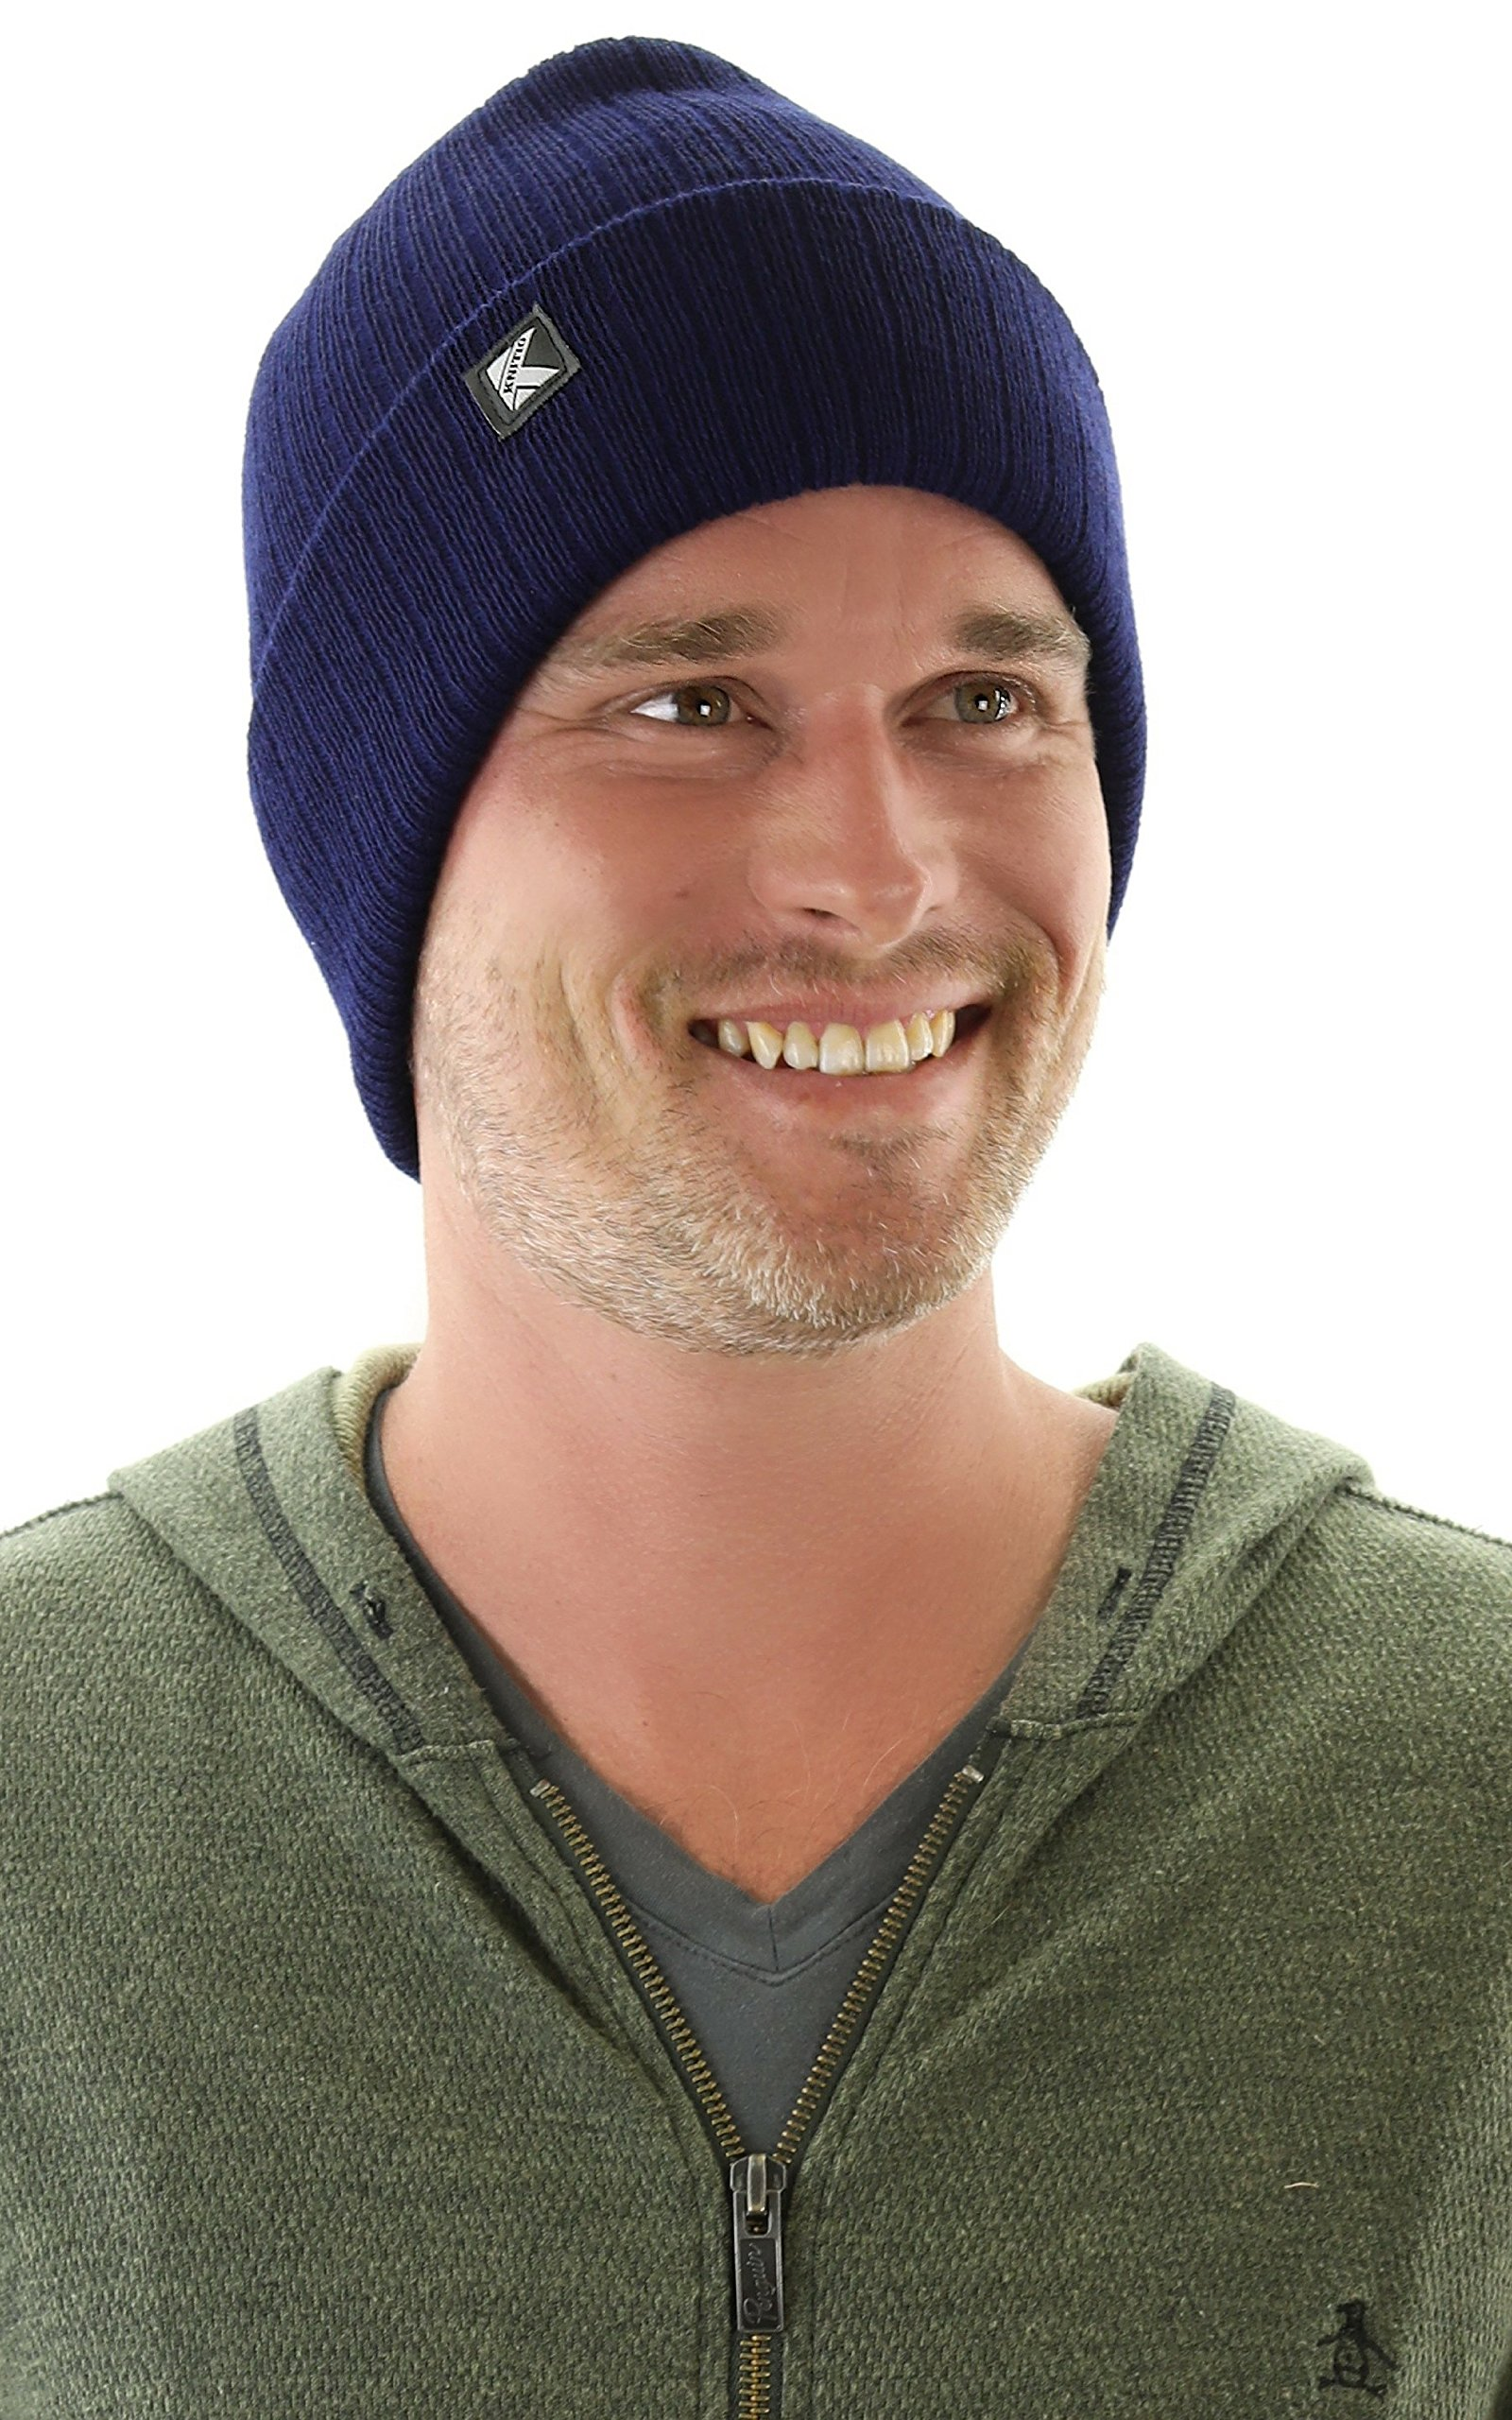 Knitio Men's Cuffed Winter Beanie With Thinsulate | Warm, Comfortable, Durable Winter Hats For Men | Navy by Knitio (Image #1)